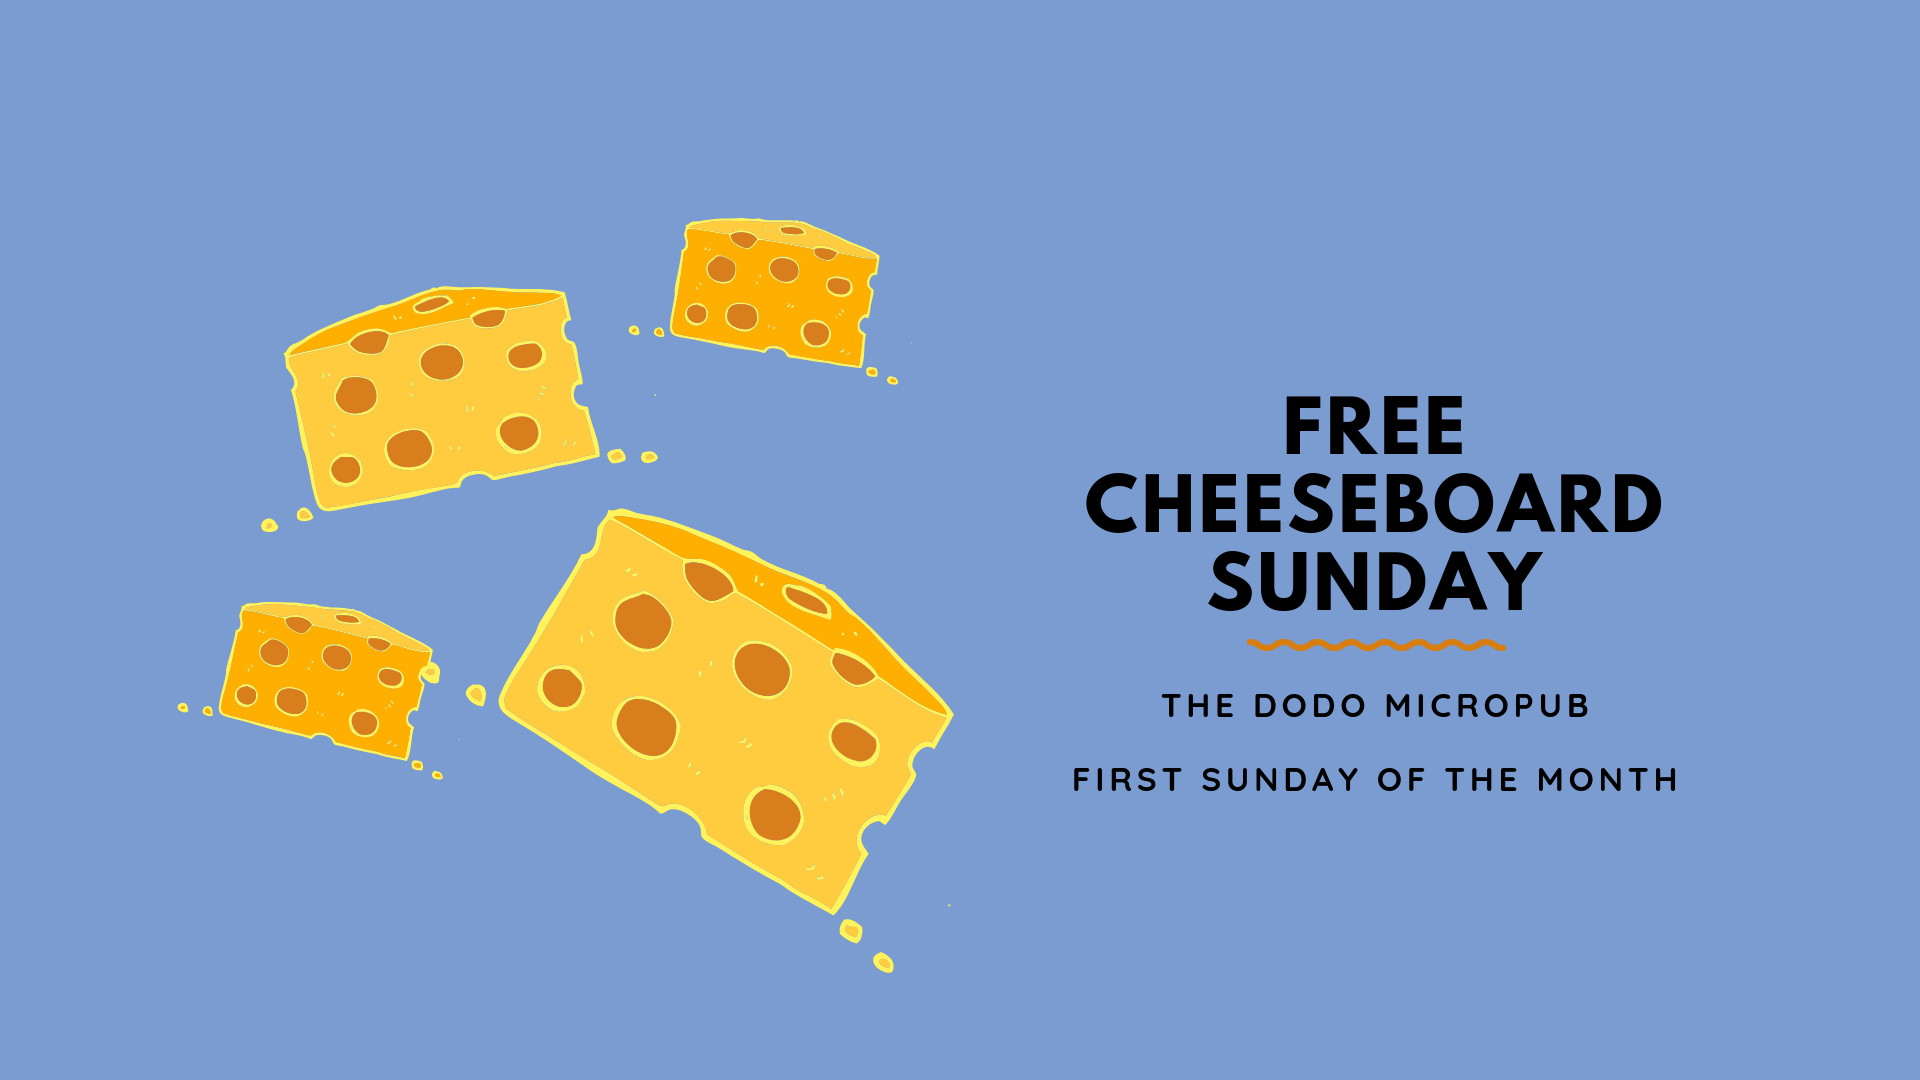 Free Cheeseboard Sunday Dodo Micropub